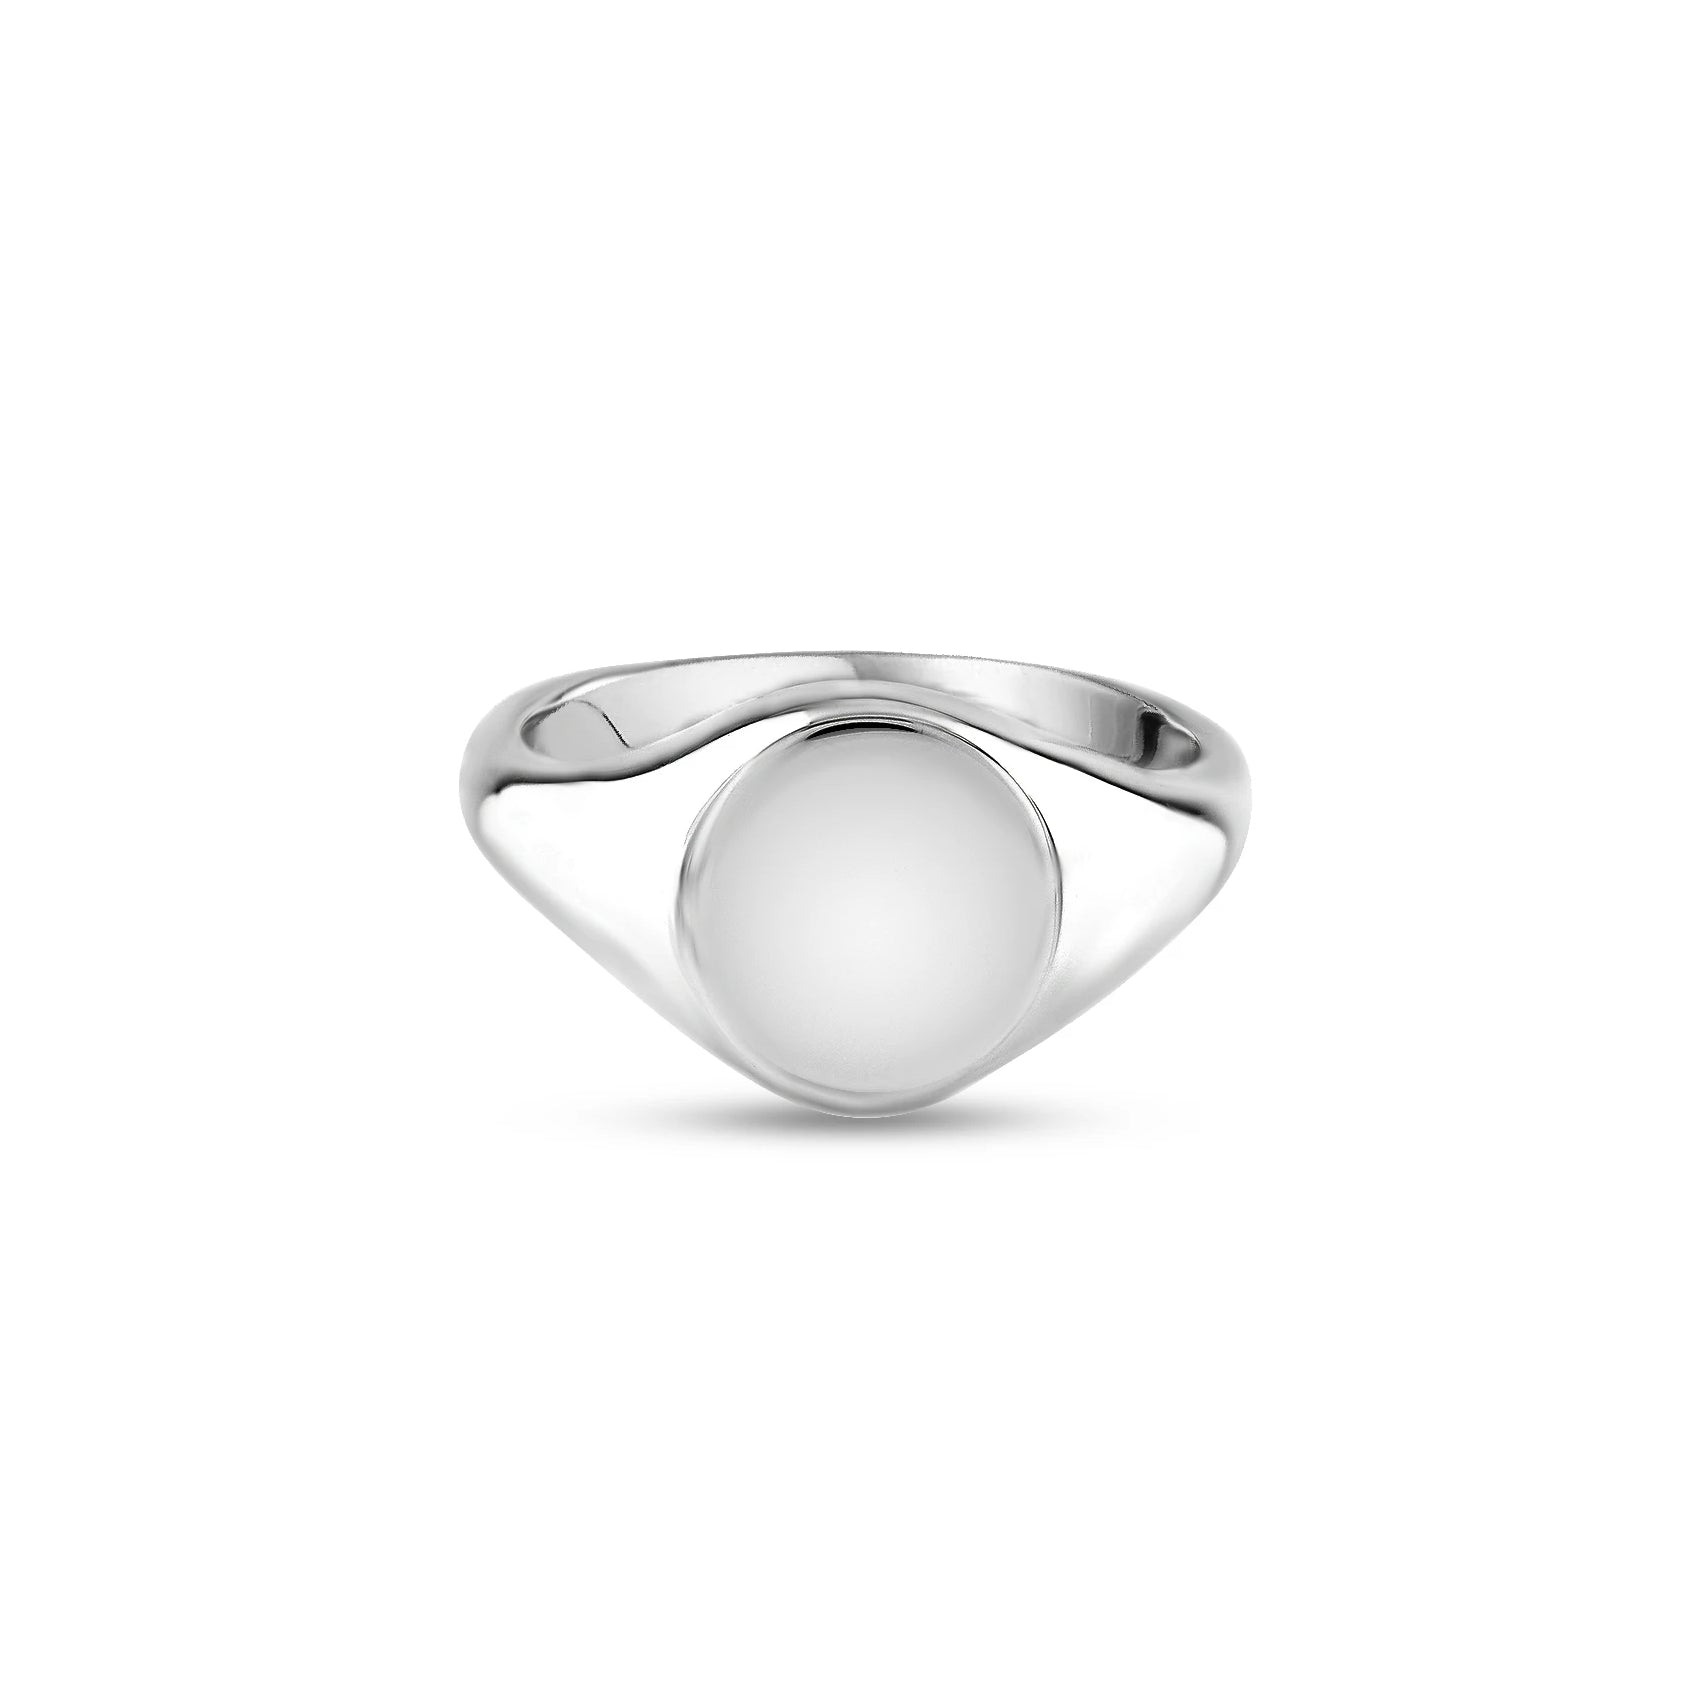 Silver 11 x 9mm Oval Signet Ring